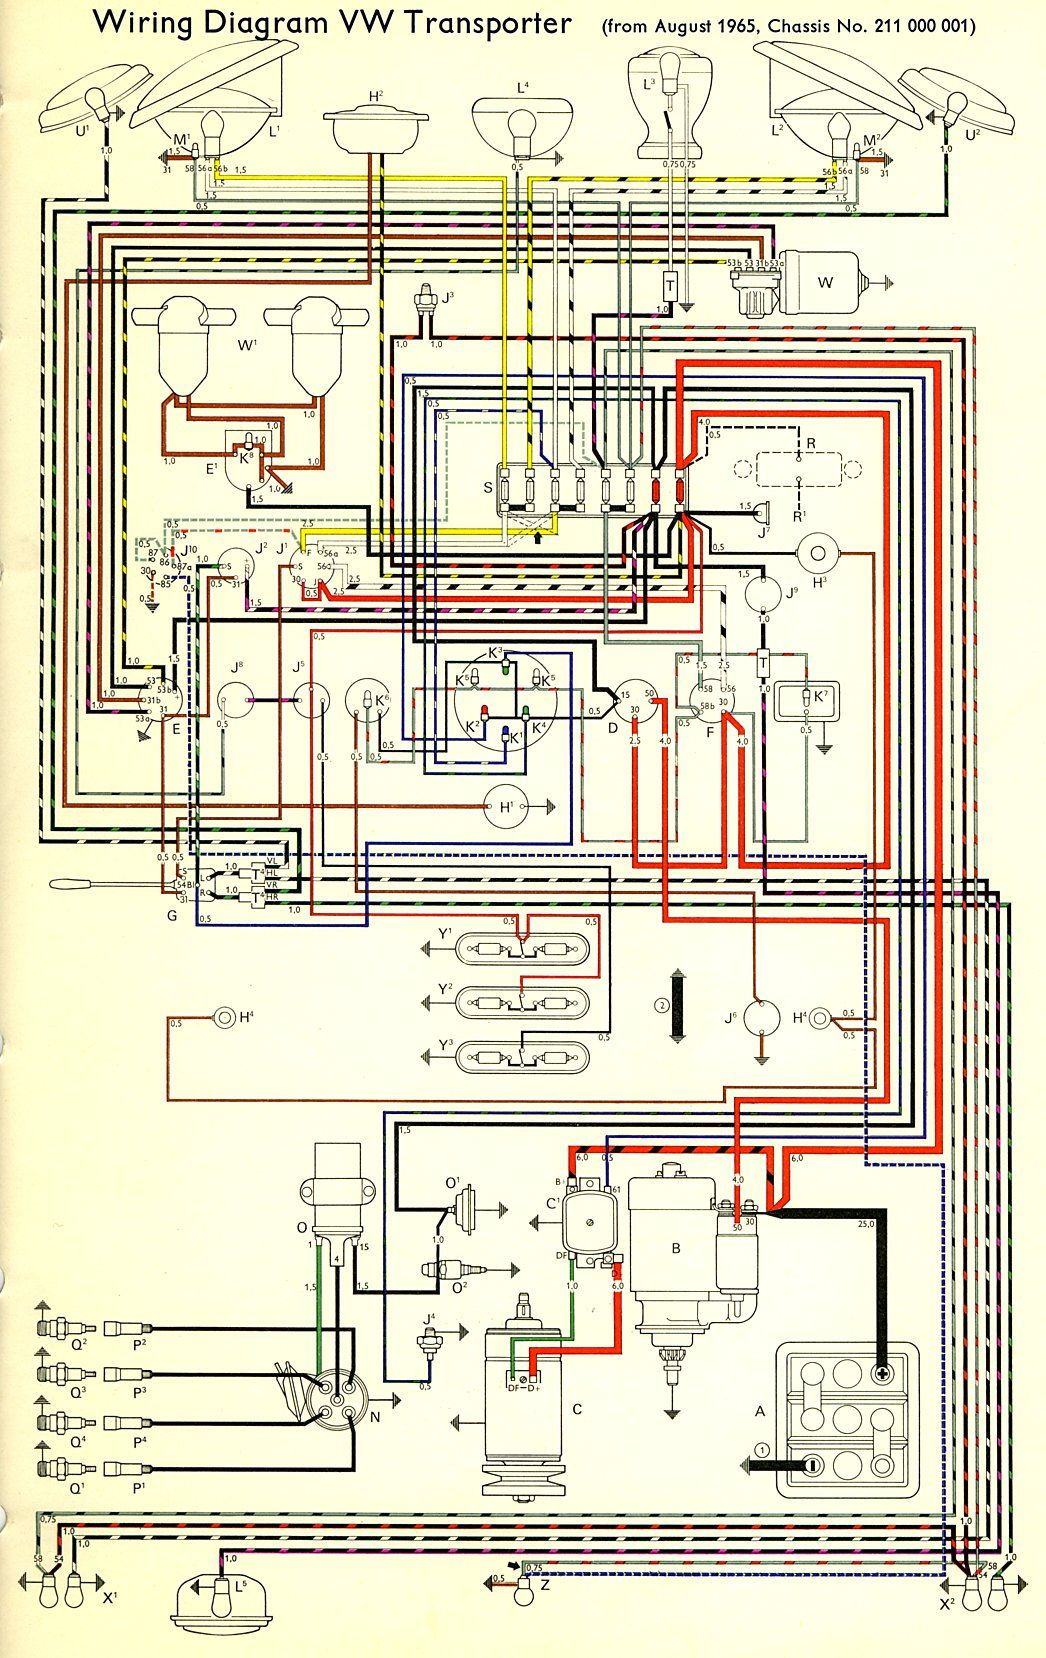 wiring diagram vw transporter the samba bay pride wiring diagram vw transporter the samba